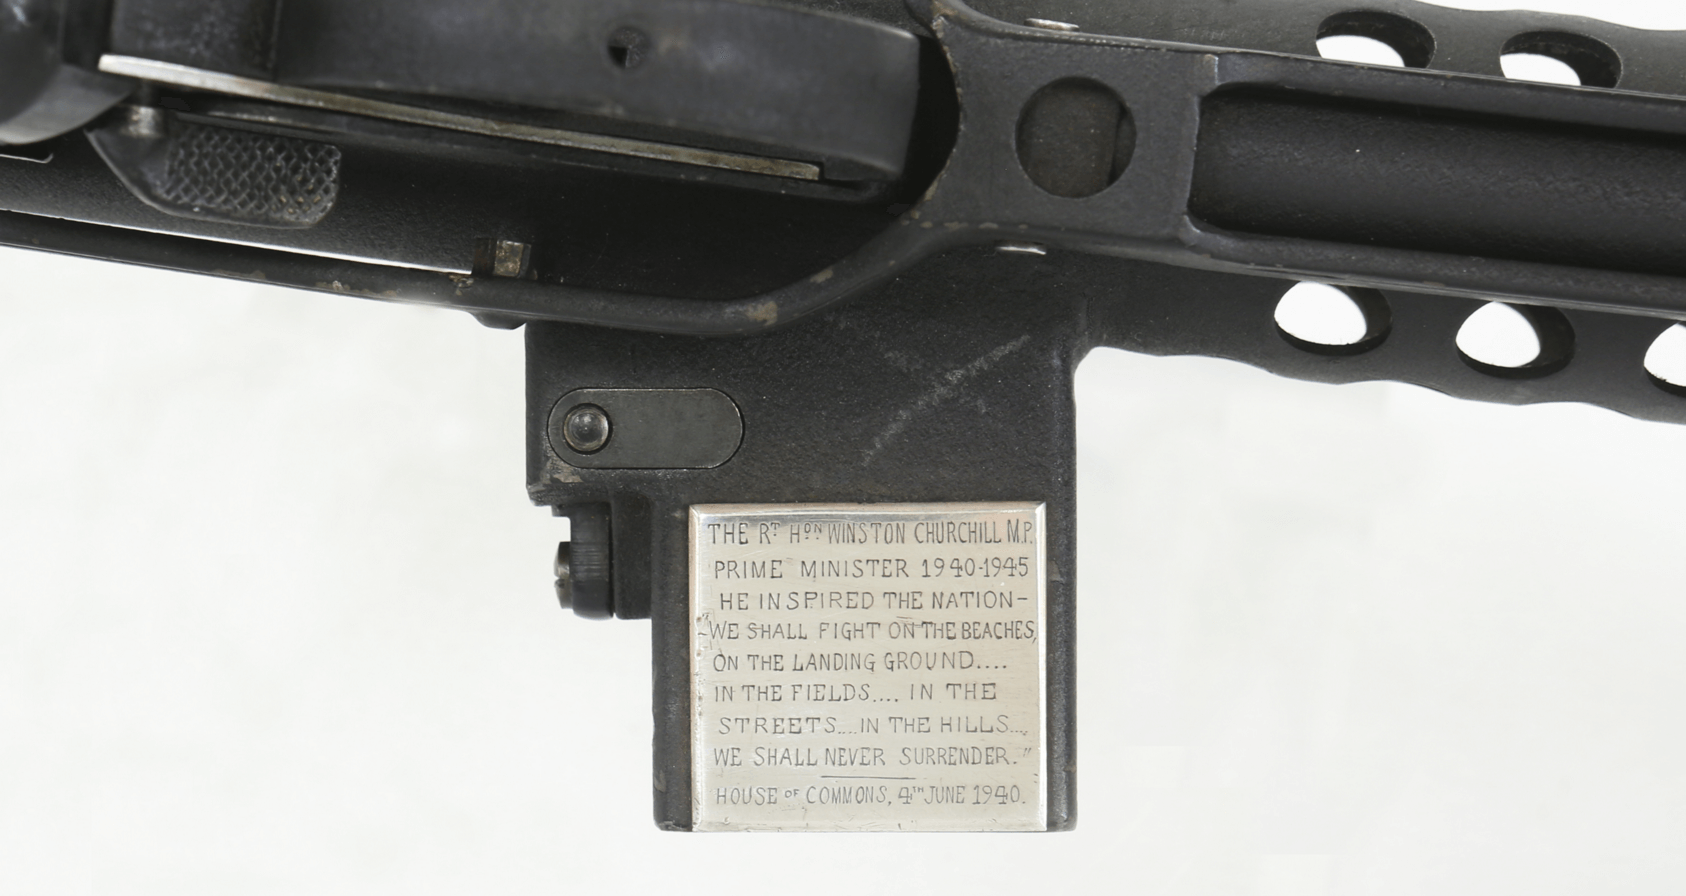 A close up of a machine gun with a silver plaque with churchills speech